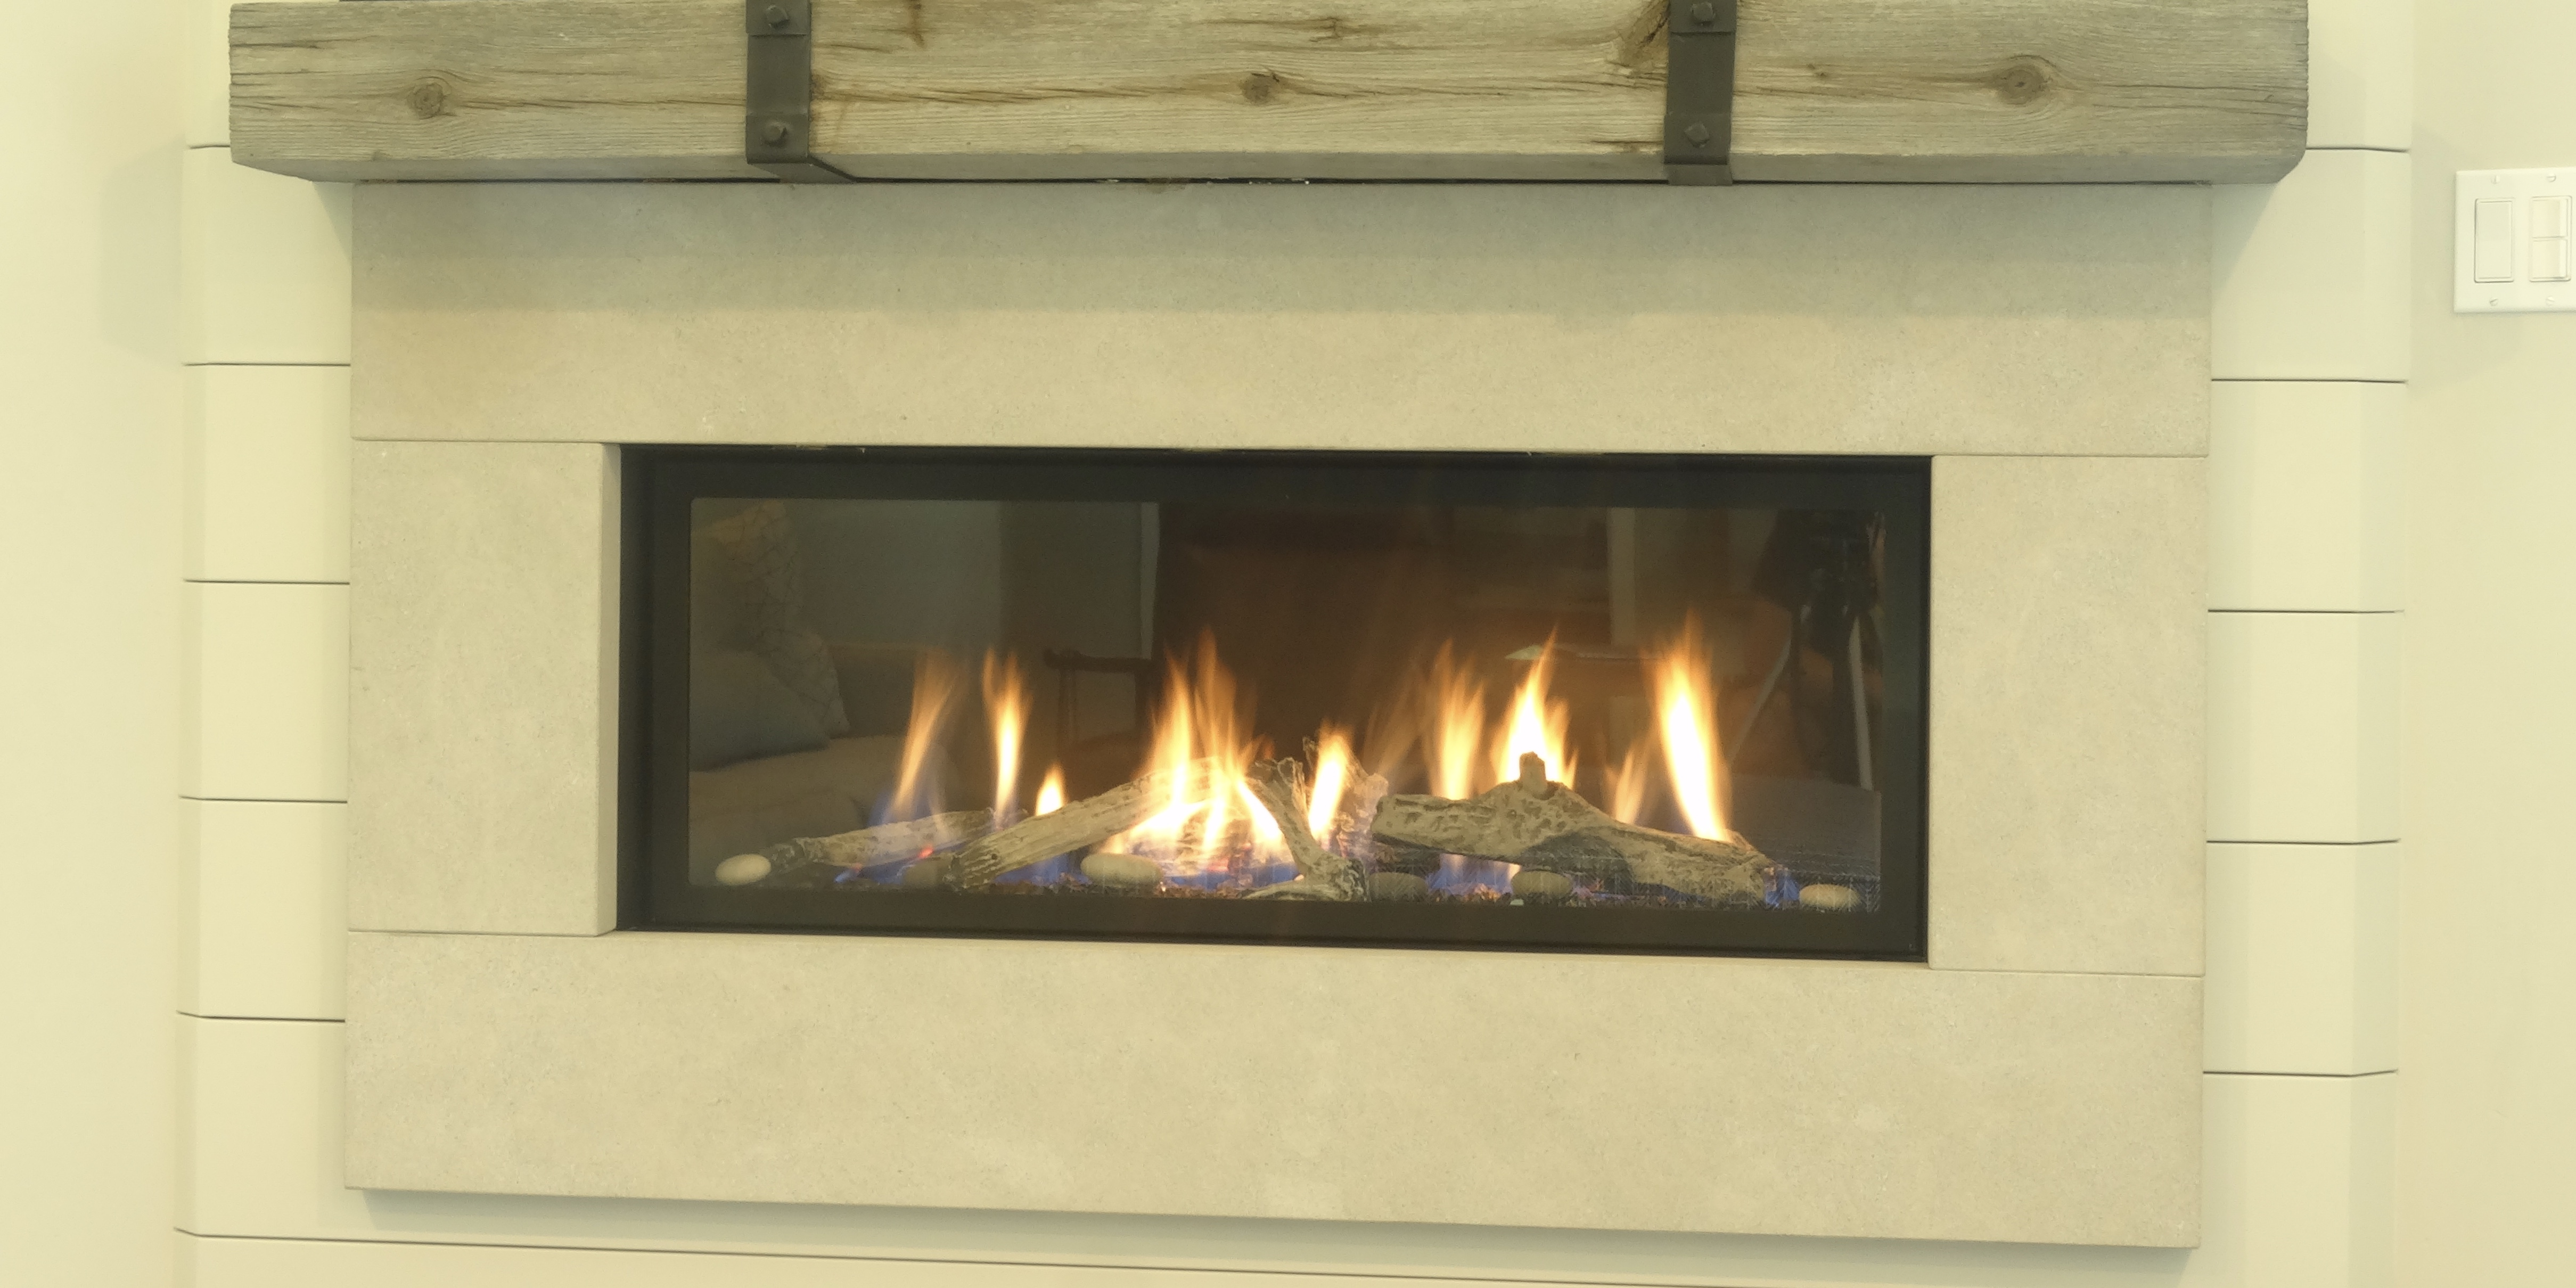 Fireplace Gas Fireplace Cost To Convert High Efficiency Wood Fireplaces - Builder's Fireplace Company